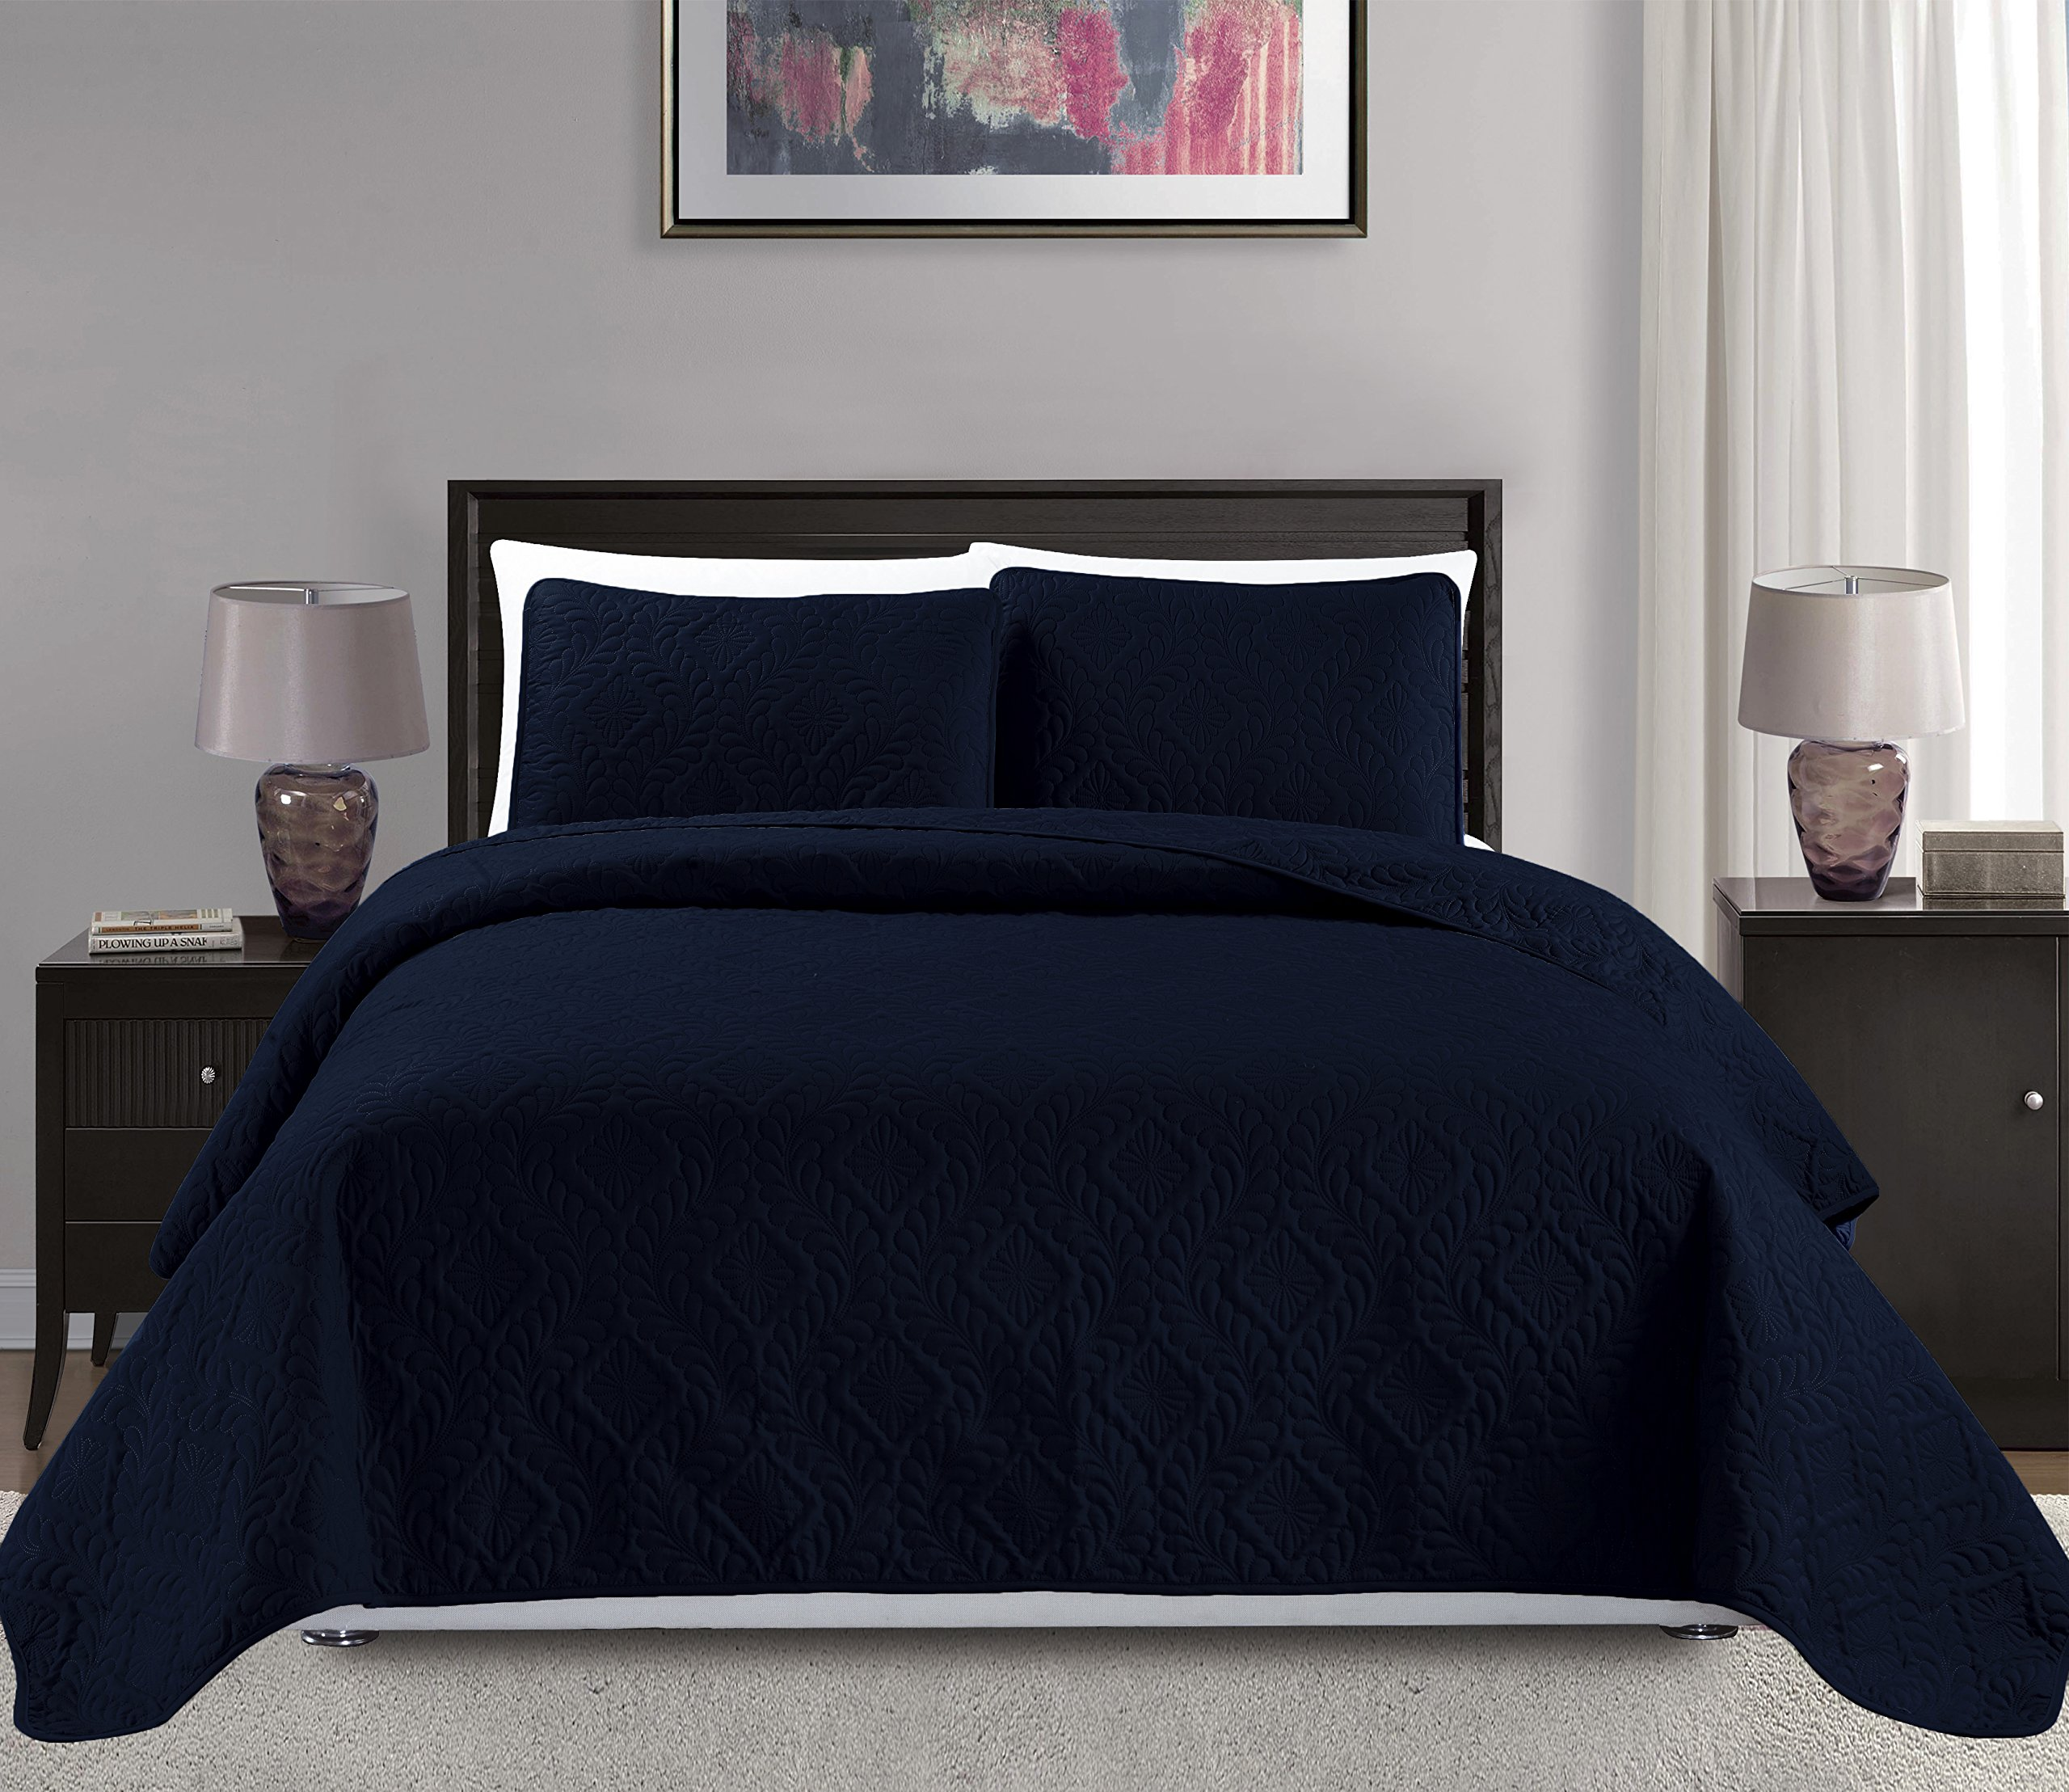 Mk Collection King/California king over size 118''x106'' 3 pc Diamond Bedspread Bed-cover Embossed solid Navy Blue New